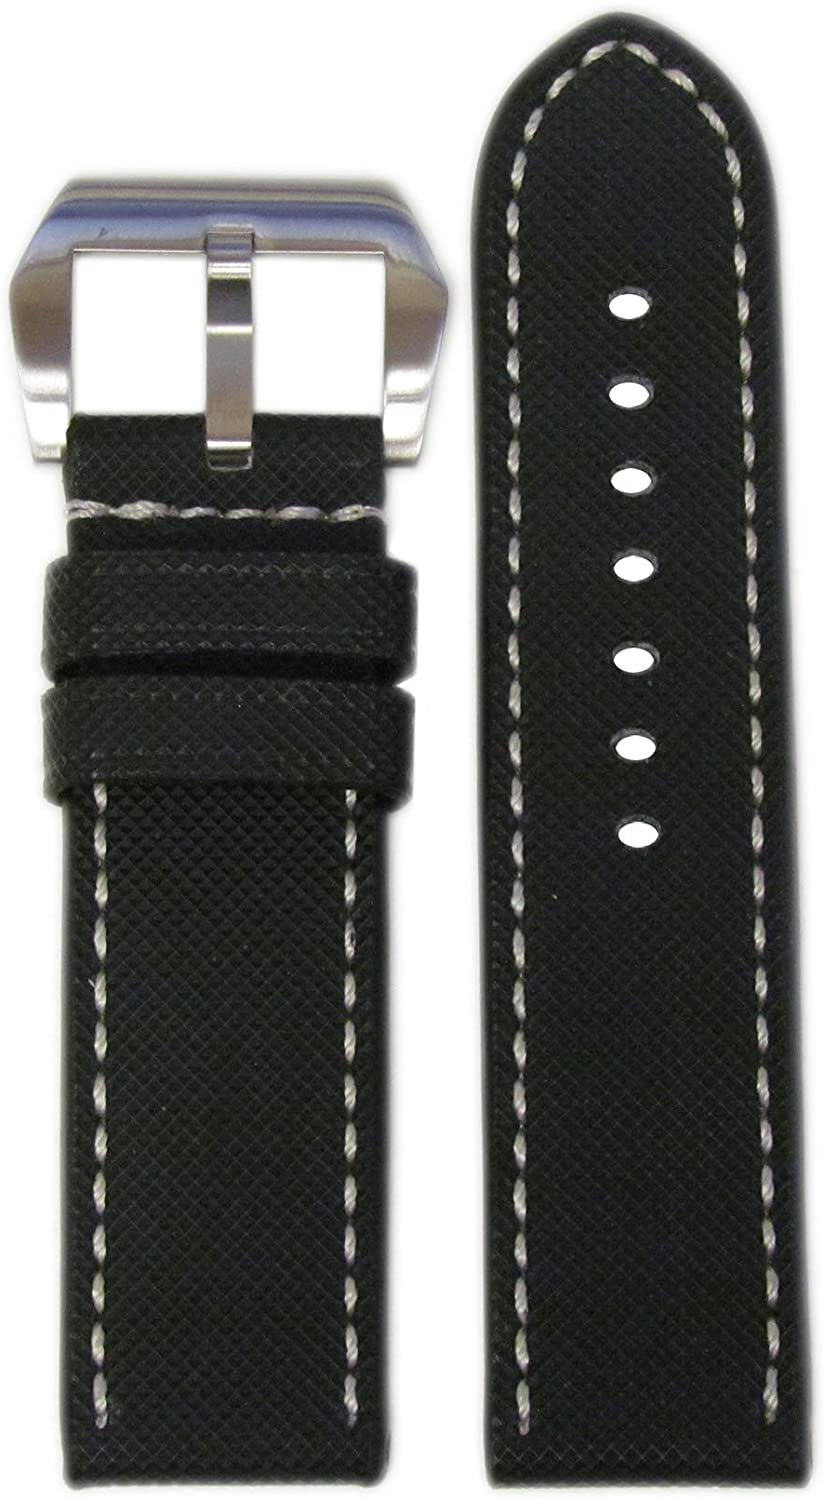 24mm RIOS1931 for Panatime Black 'KVLR' Style Waterproof Synthetic Watch Strap with White Stitching for Panerai 24/24 115/85